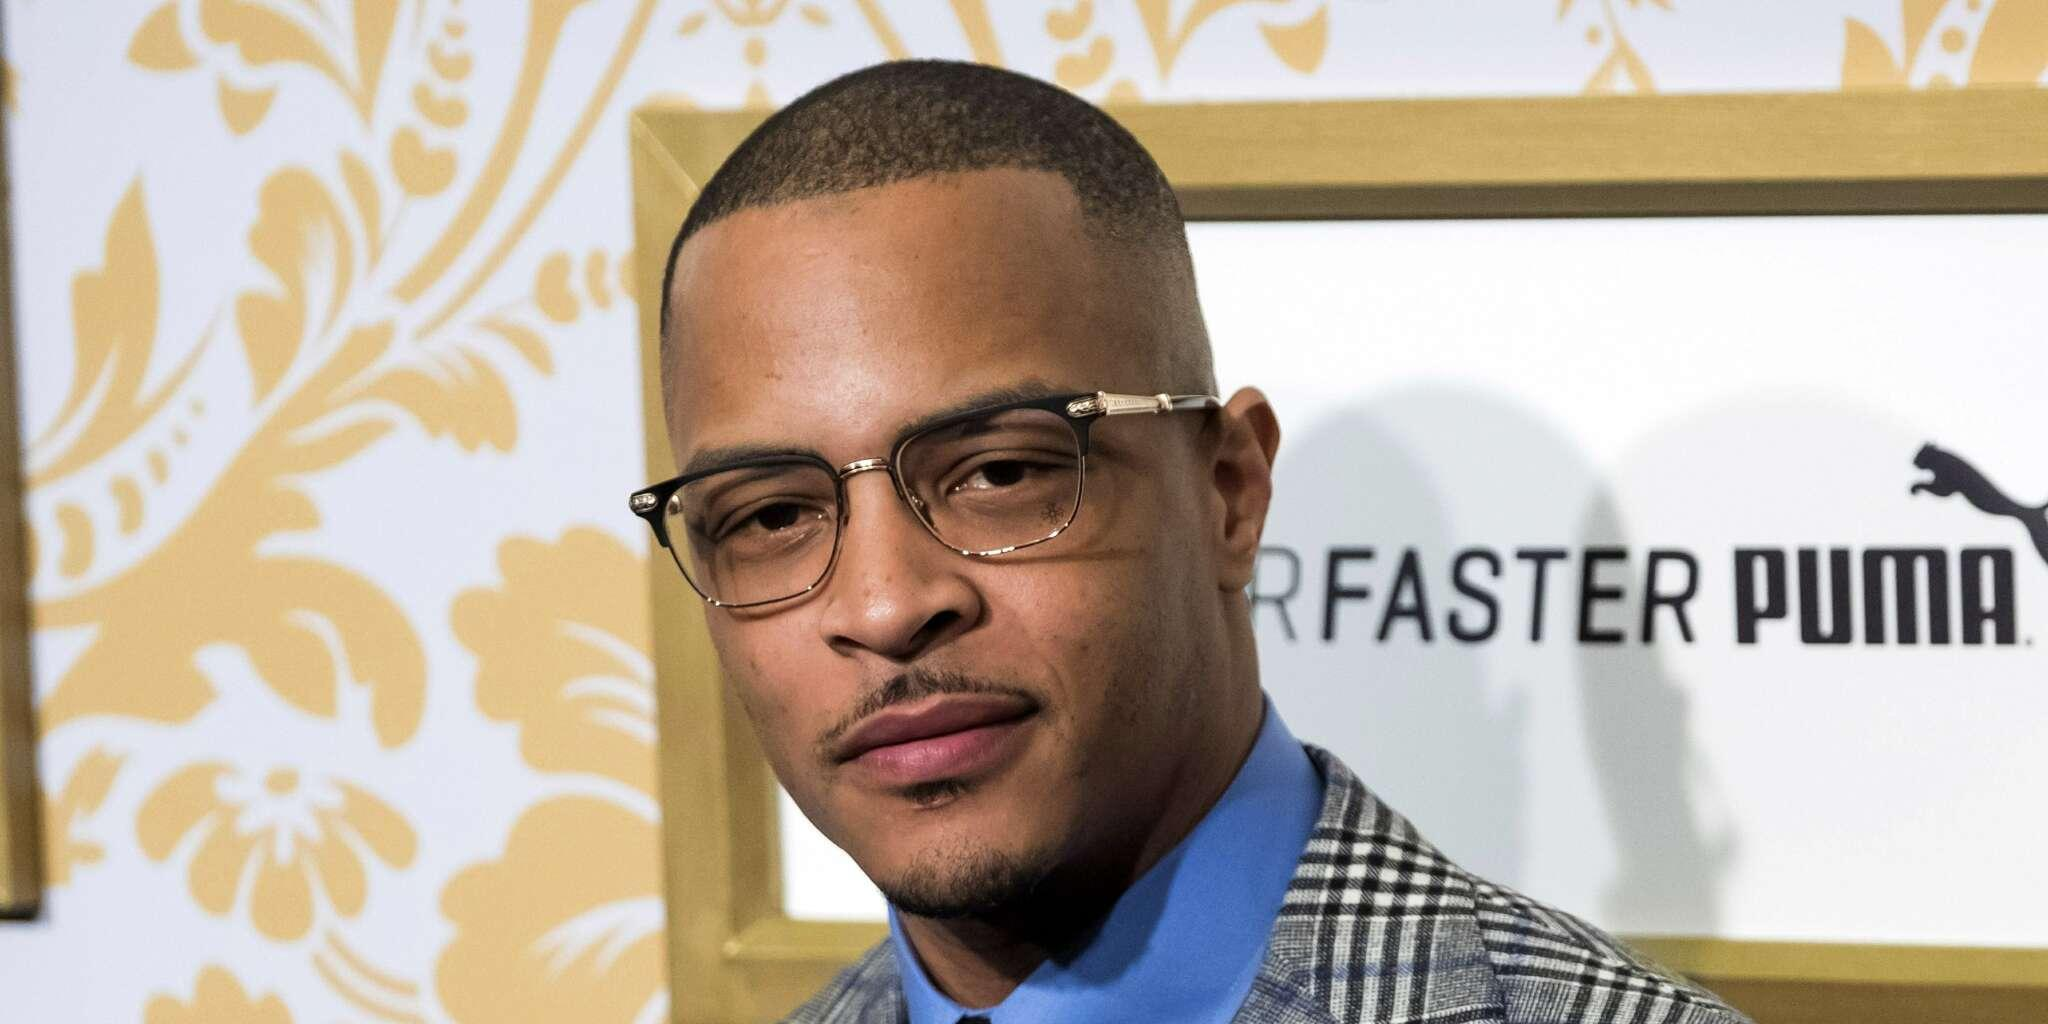 T.I. Triggers A Debate Among Fans Following The Video He Posted